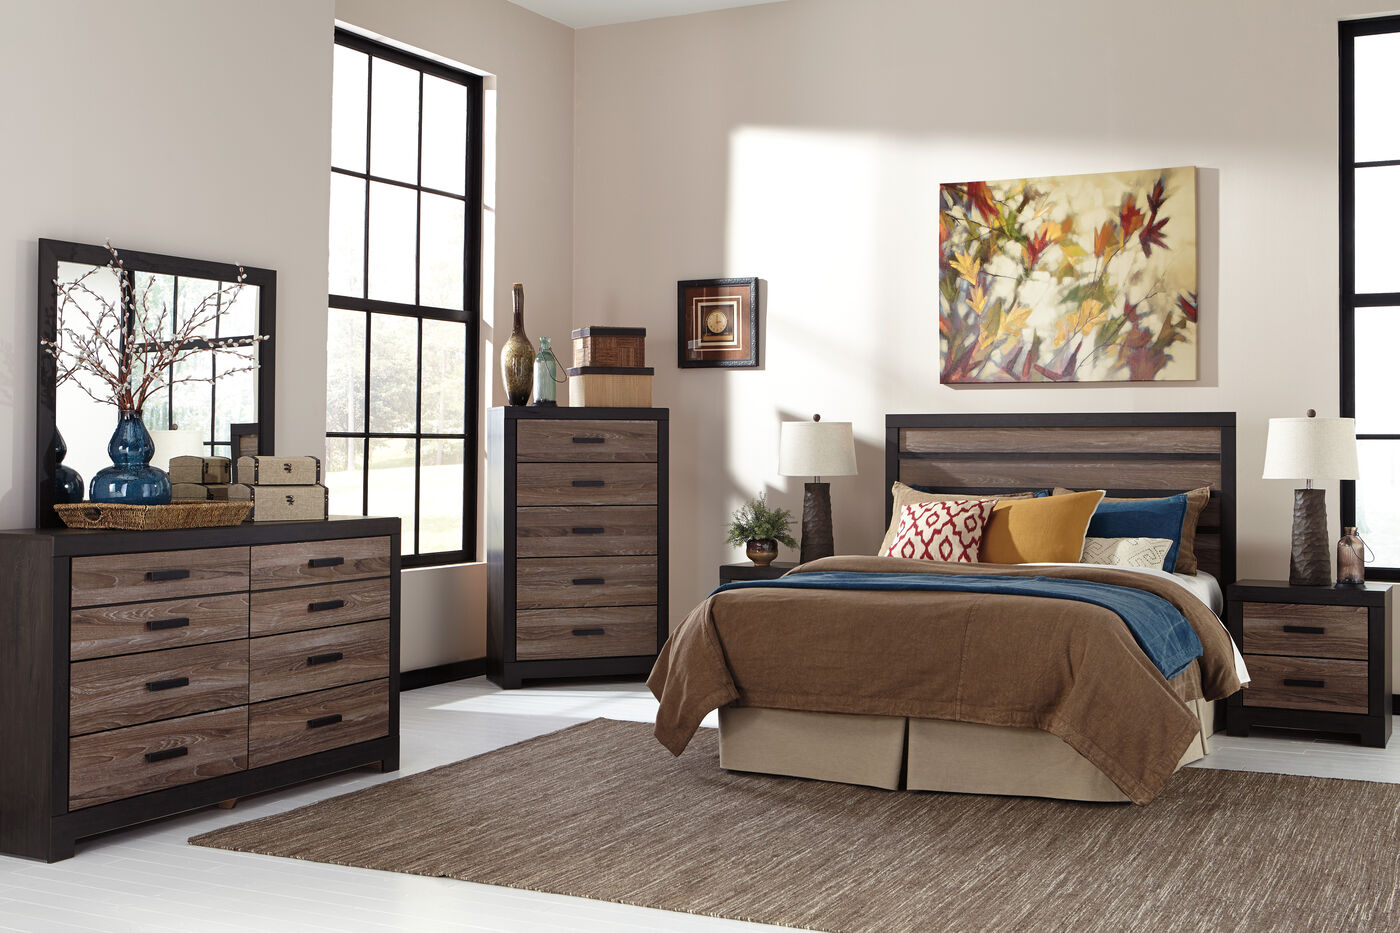 Ashley harlinton suite mathis brothers furniture for Ashley furniture bedroom suites